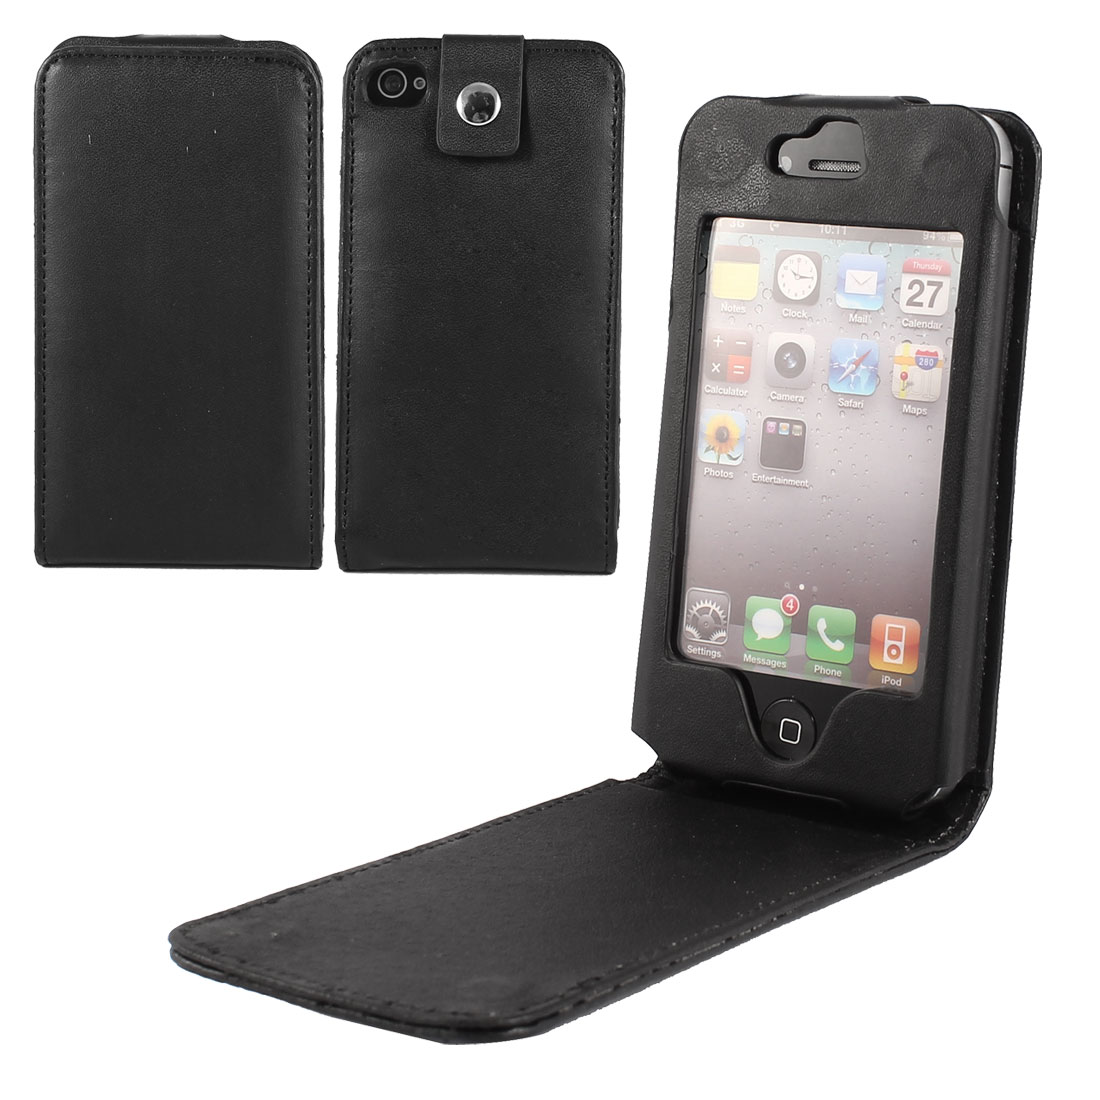 Black Vertical PU Leather Protective Phone Case Cover for Apple iPhone 4 4GS 4th